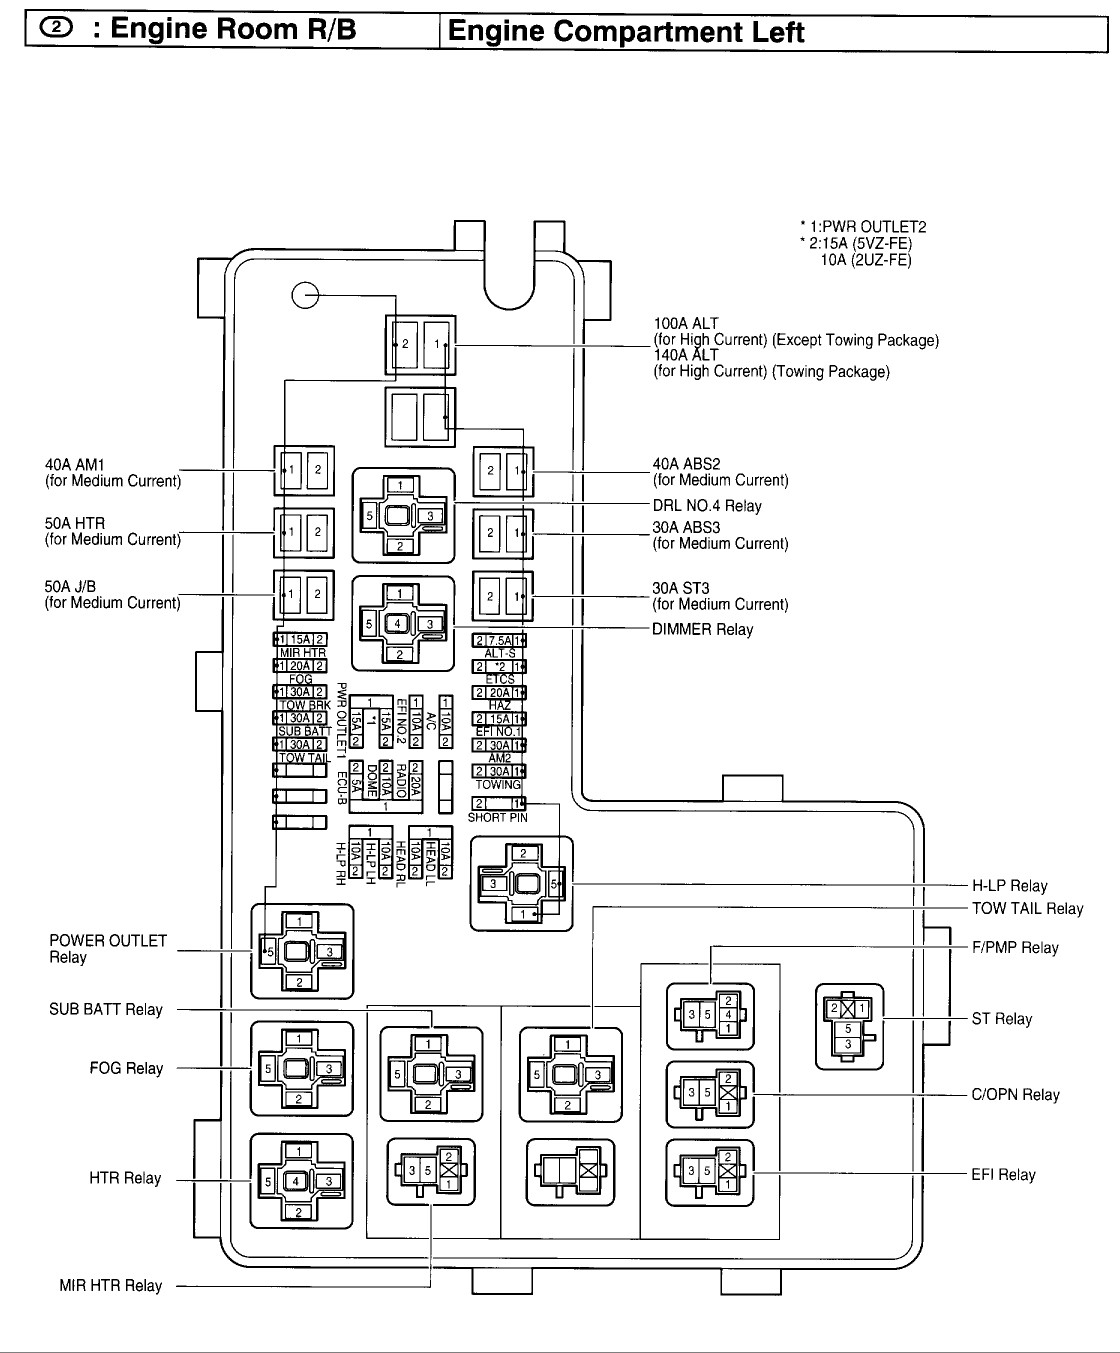 2014 Tundra Fuse Diagram - Wiring Diagram Replace week-notice -  week-notice.miramontiseo.it | 2014 Toyota Tundra Fuse Diagram |  | week-notice.miramontiseo.it